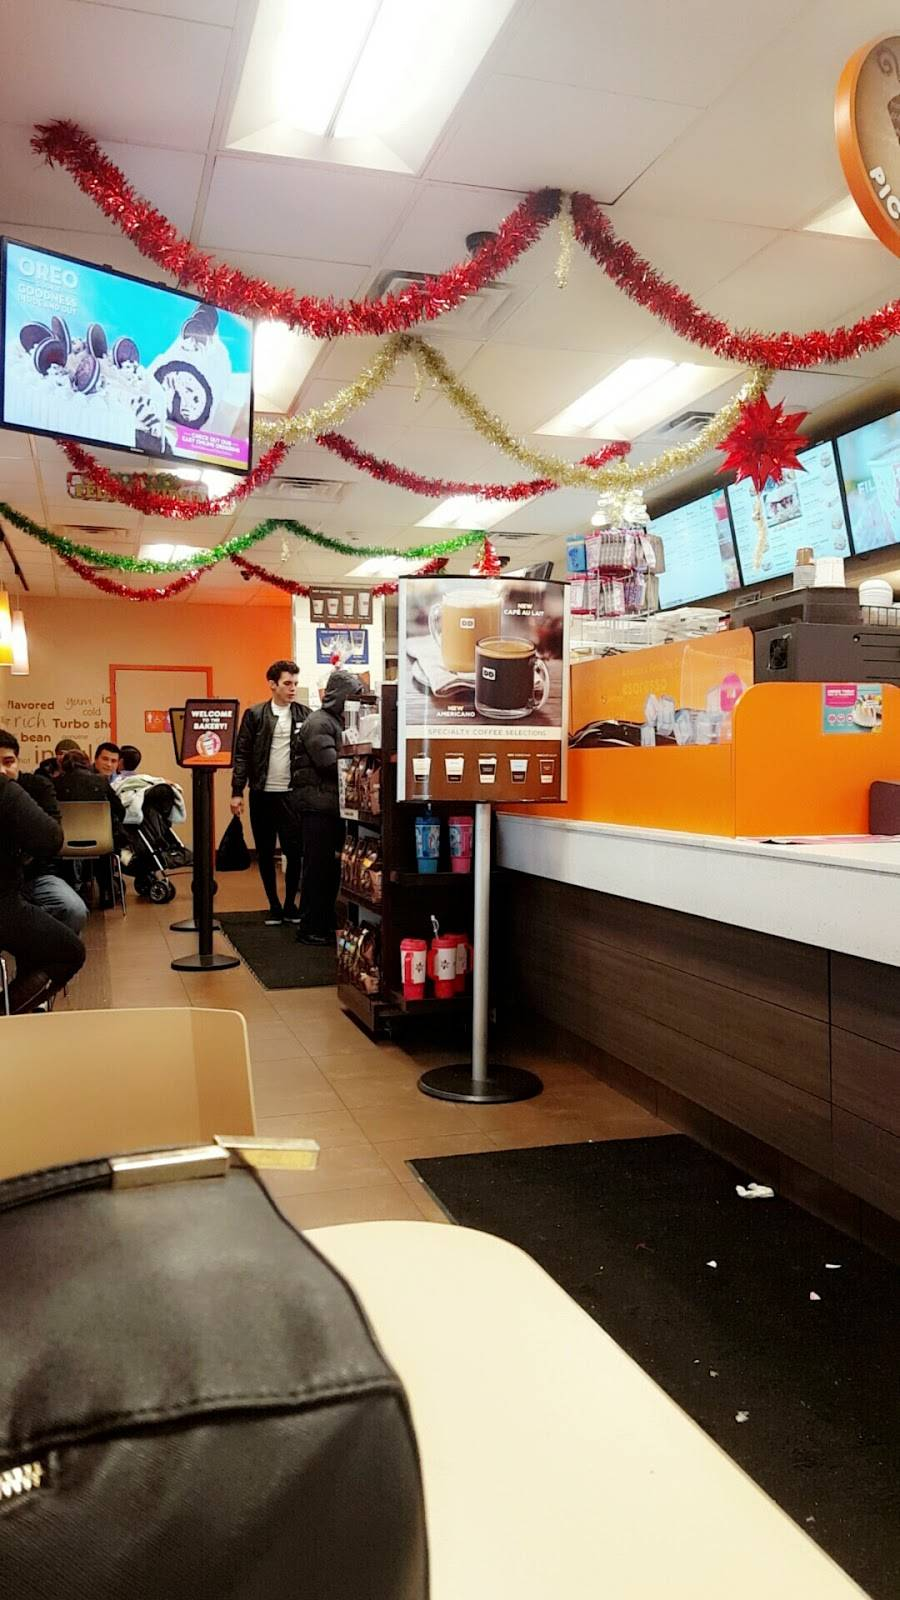 Dunkin Donuts | cafe | 5915 Bergenline Ave, West New York, NJ 07093, USA | 2018540010 OR +1 201-854-0010